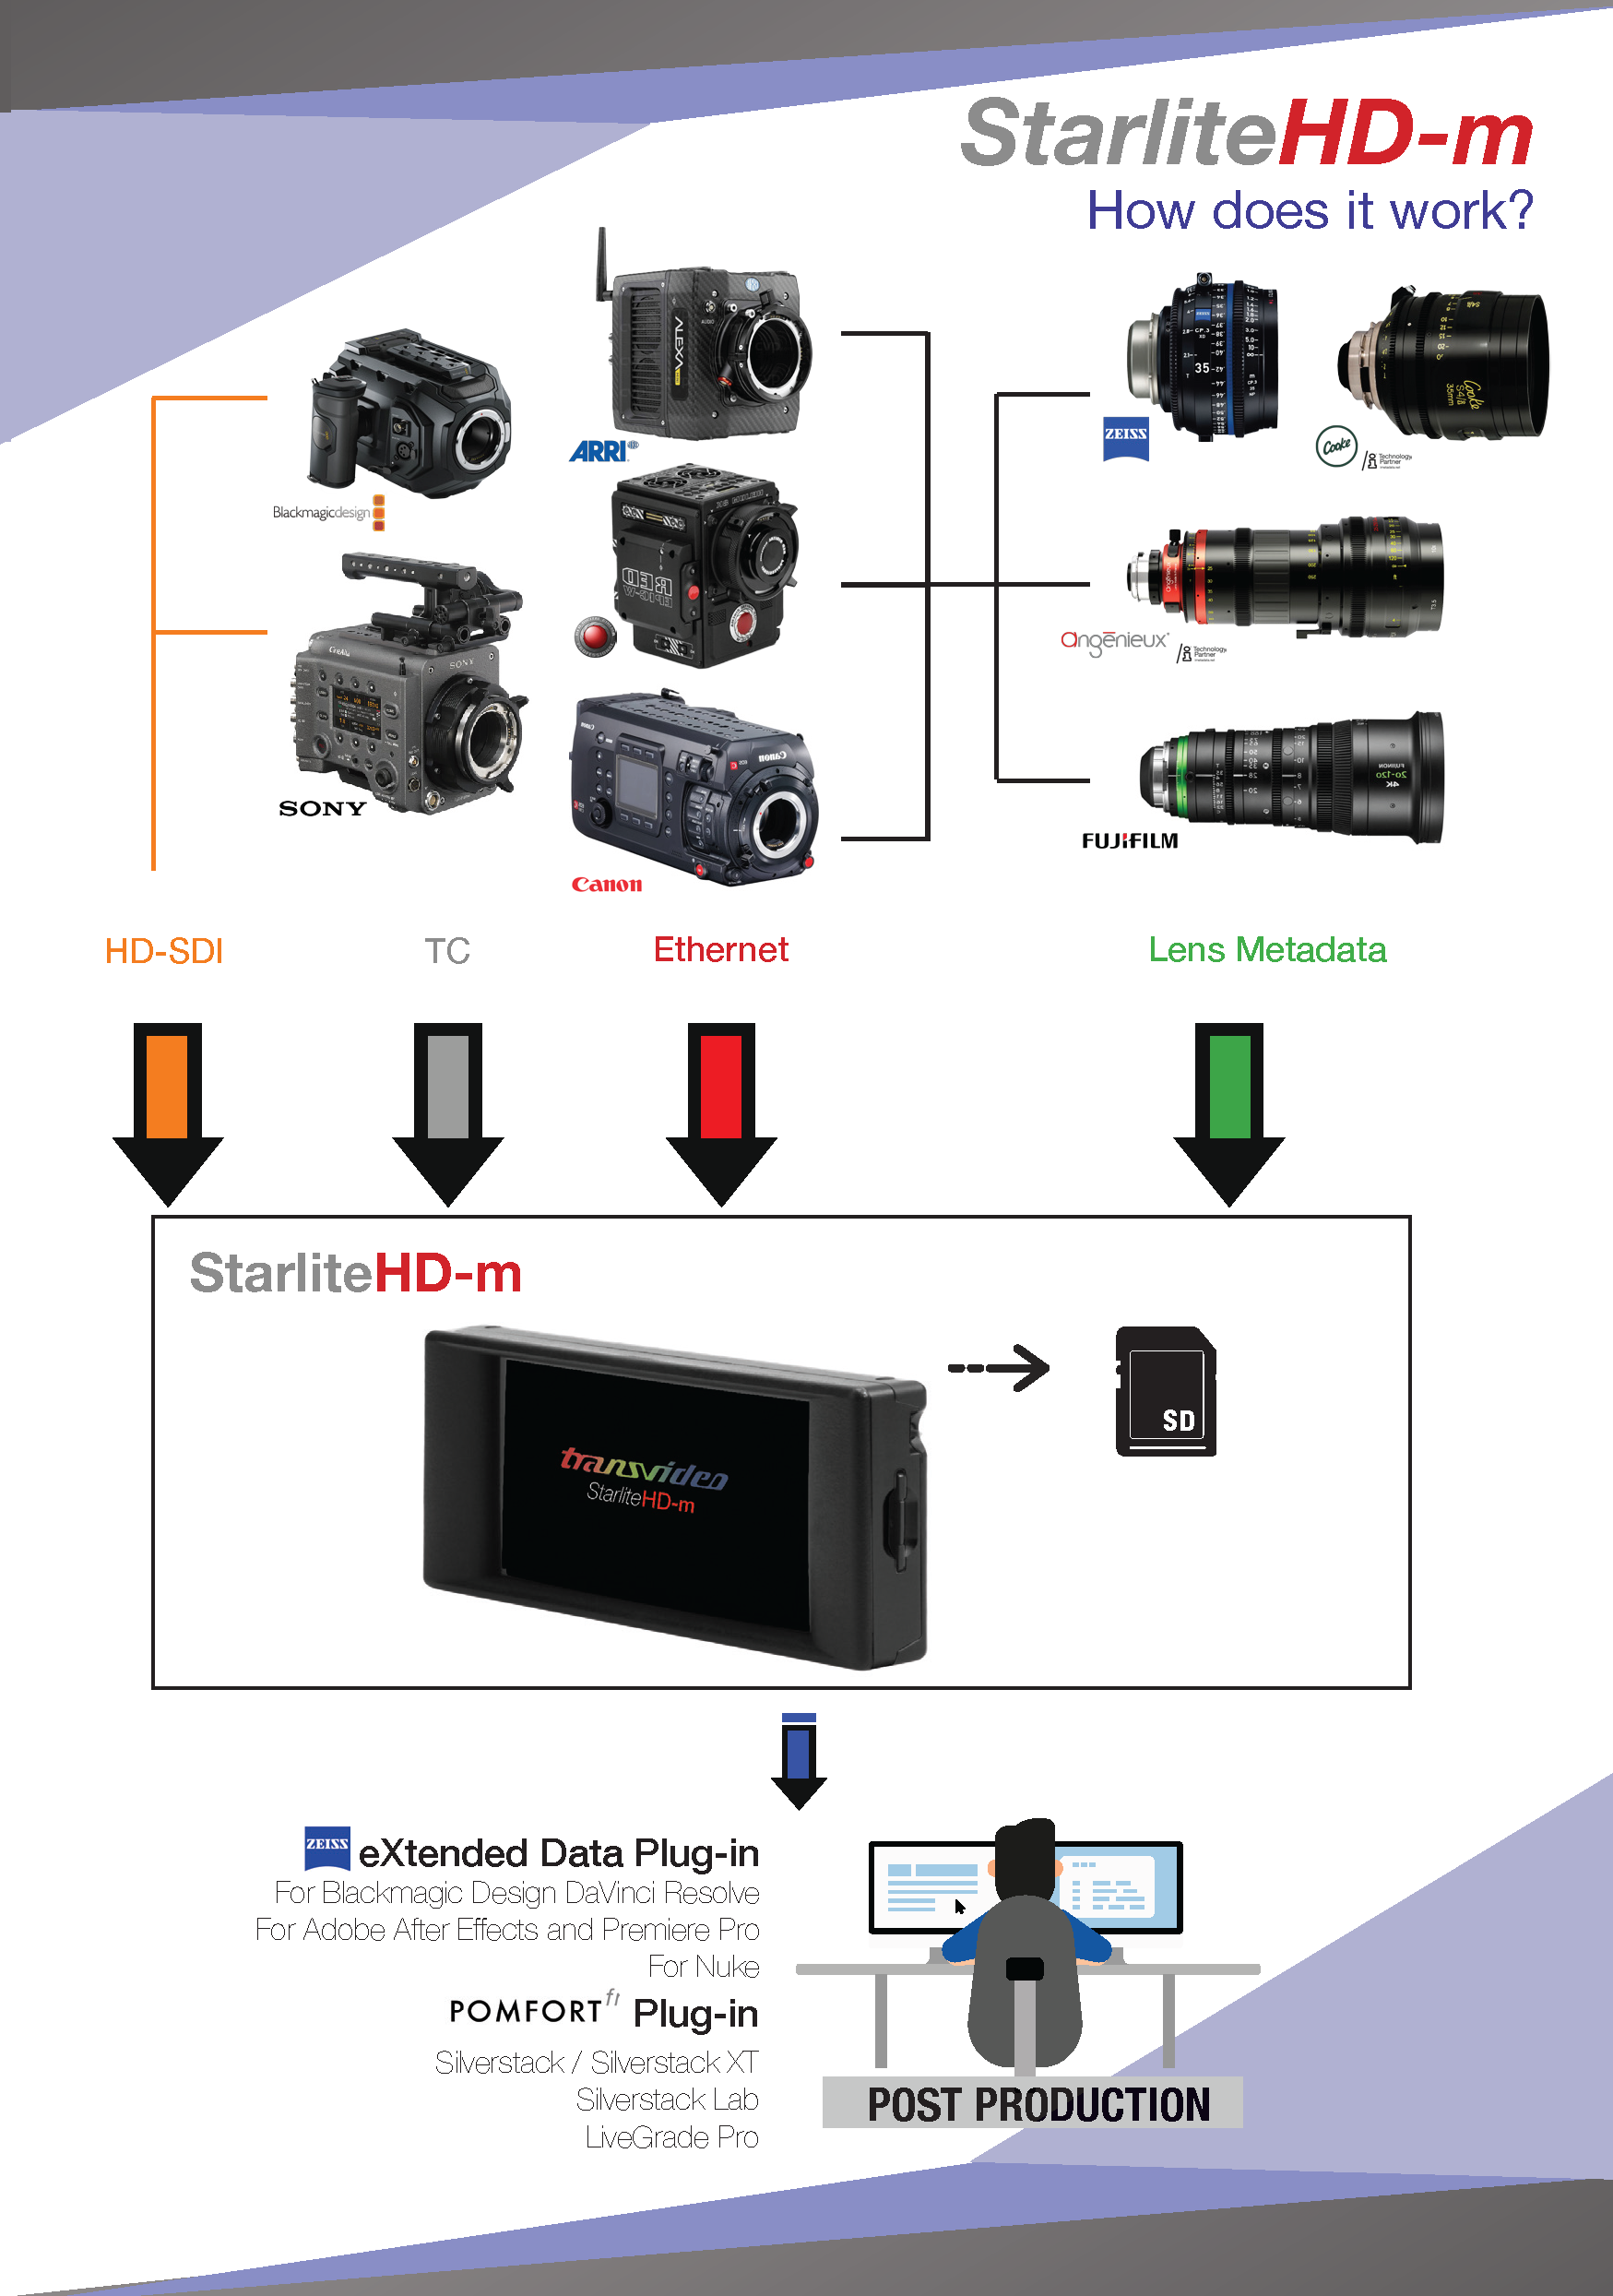 Transvideo StarliteHd-m, the metadata's missing link